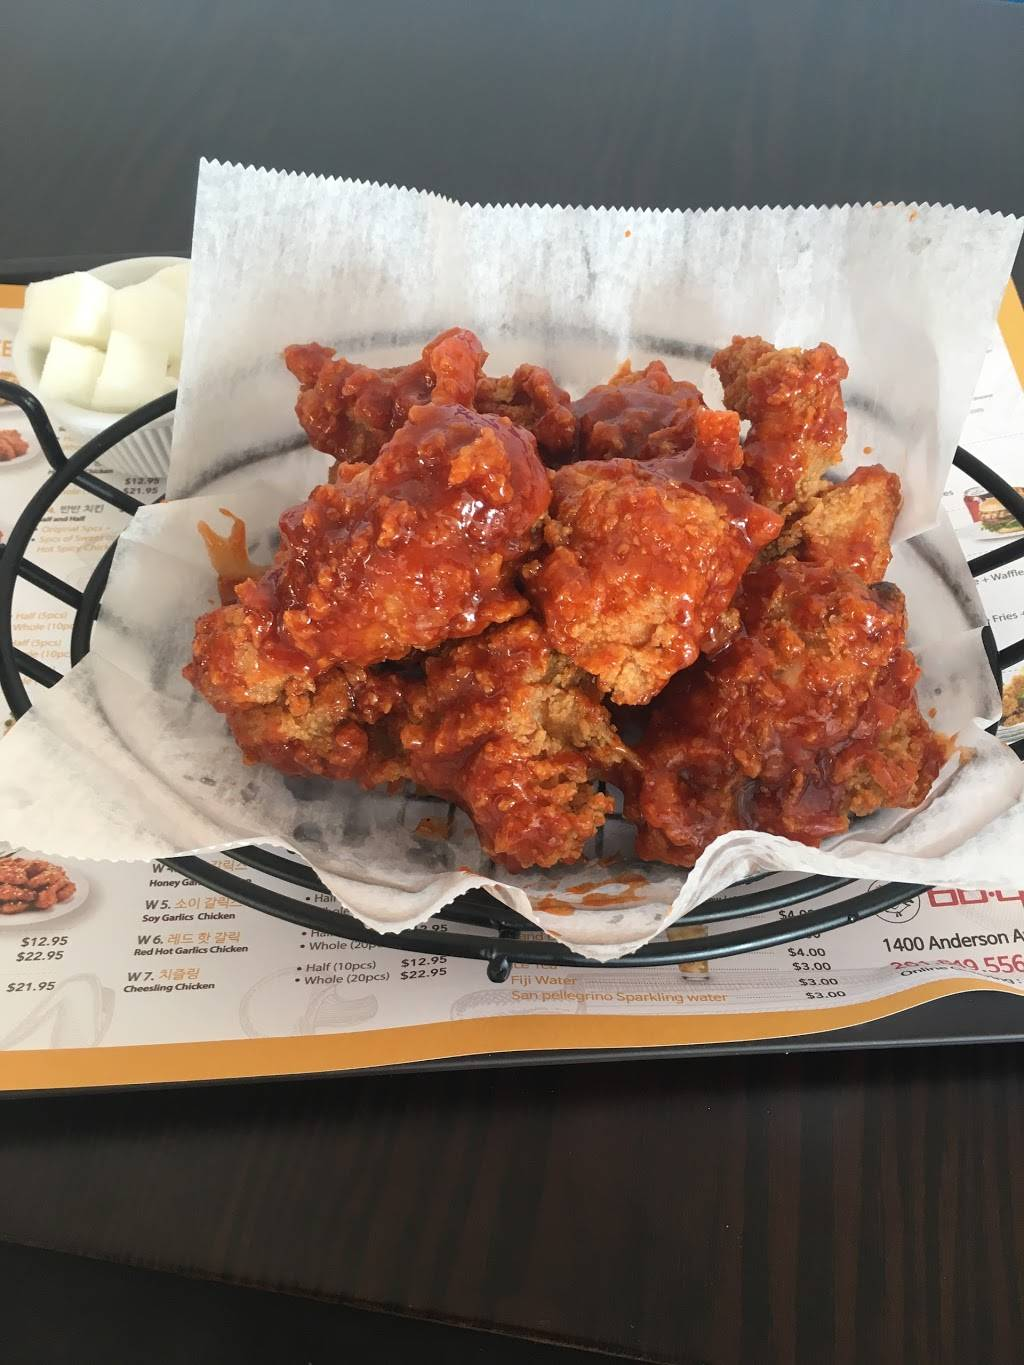 BBQ Chicken in Fort Lee | restaurant | 1400 Anderson Ave, Fort Lee, NJ 07024, USA | 2018495562 OR +1 201-849-5562